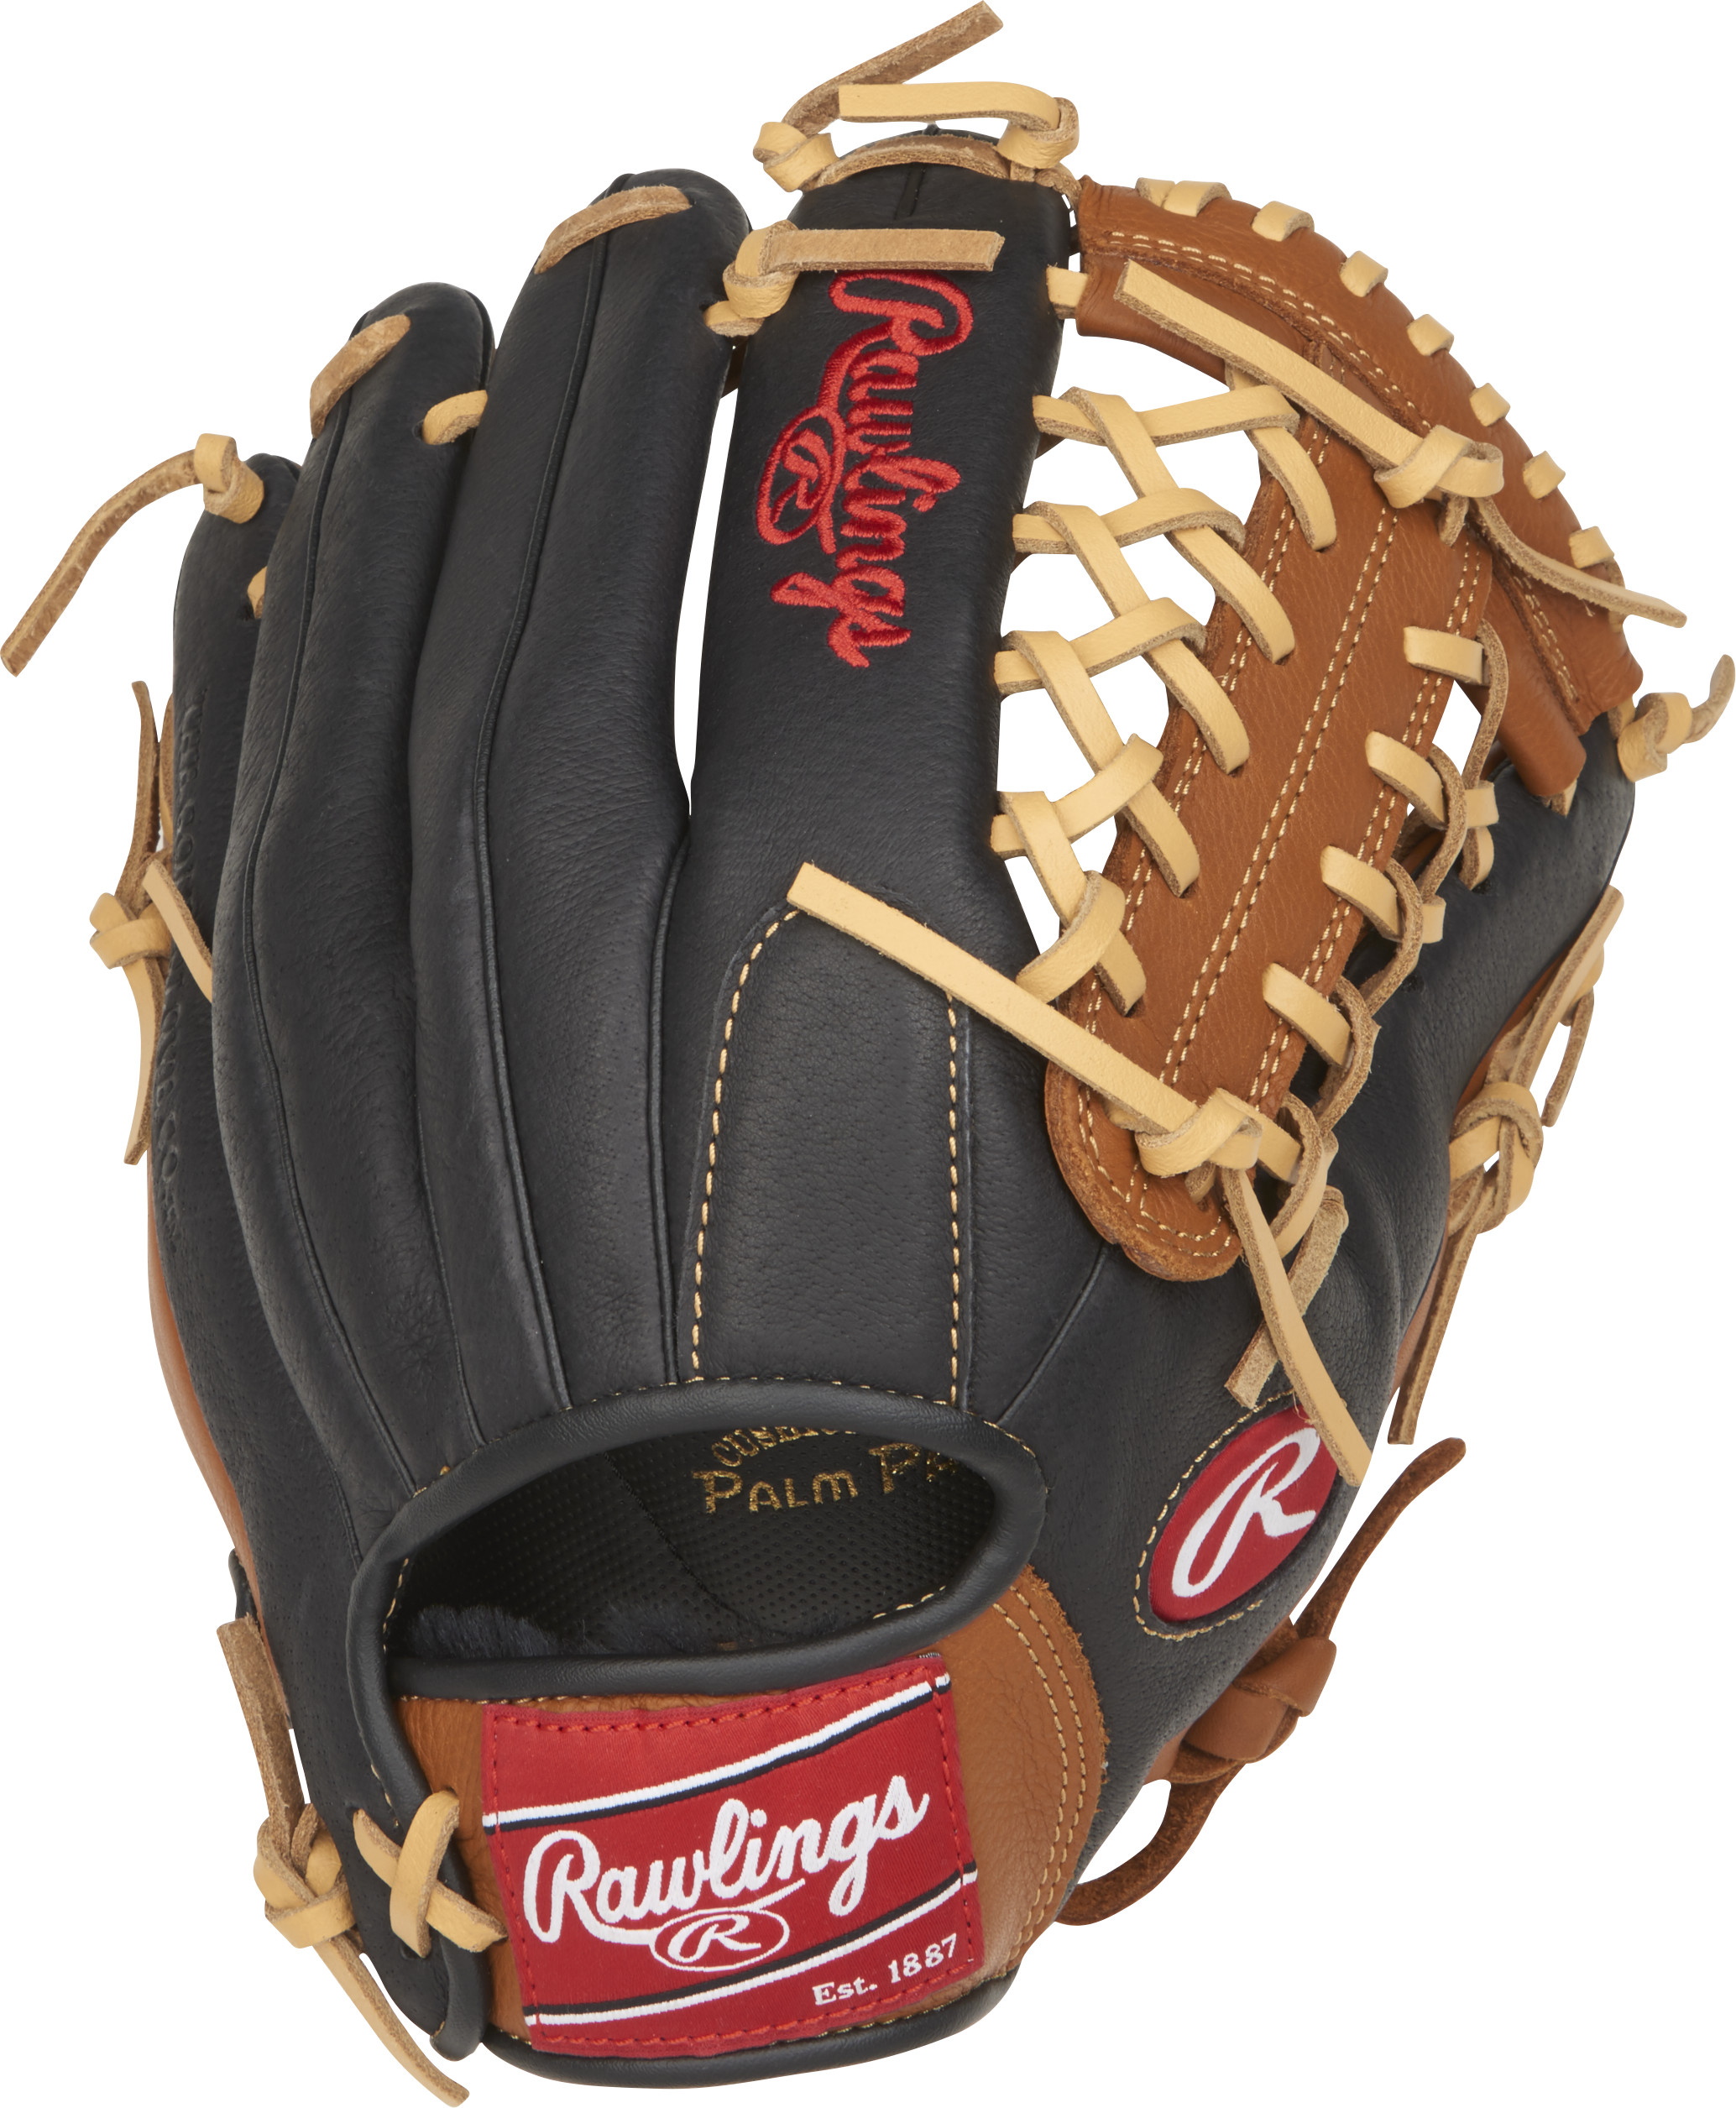 http://www.bestbatdeals.com/images/gloves/rawlings/P115GBMT-2.jpg